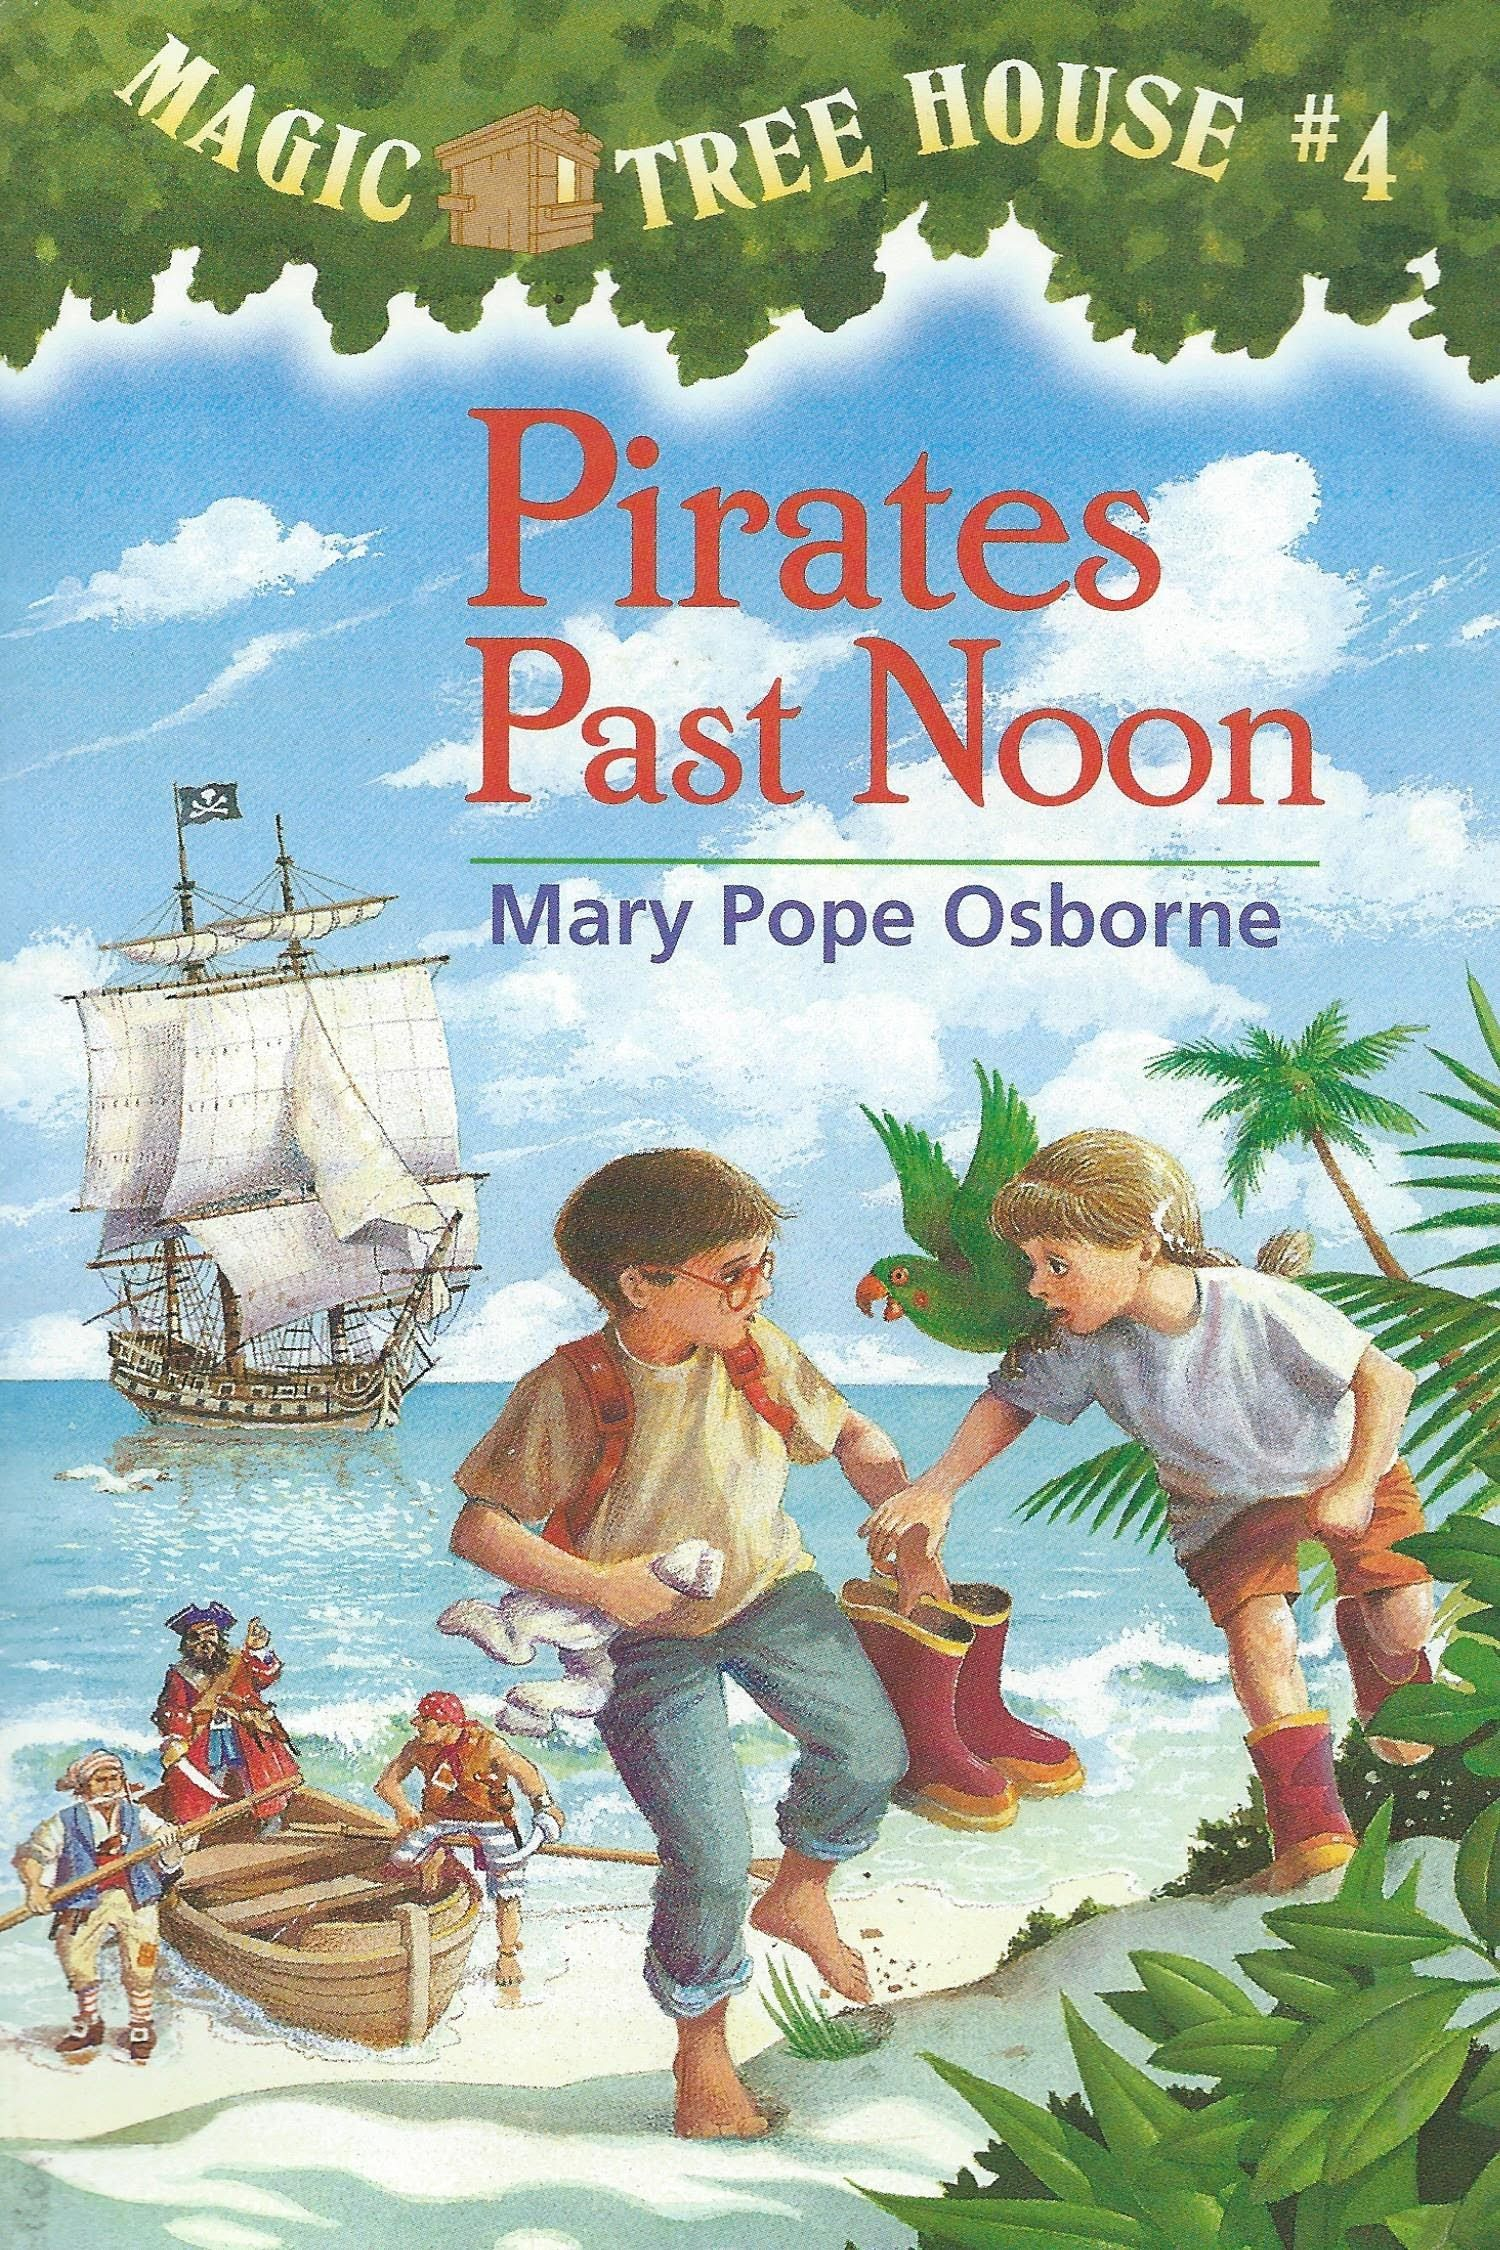 Magic Tree House Pirates Past Noon